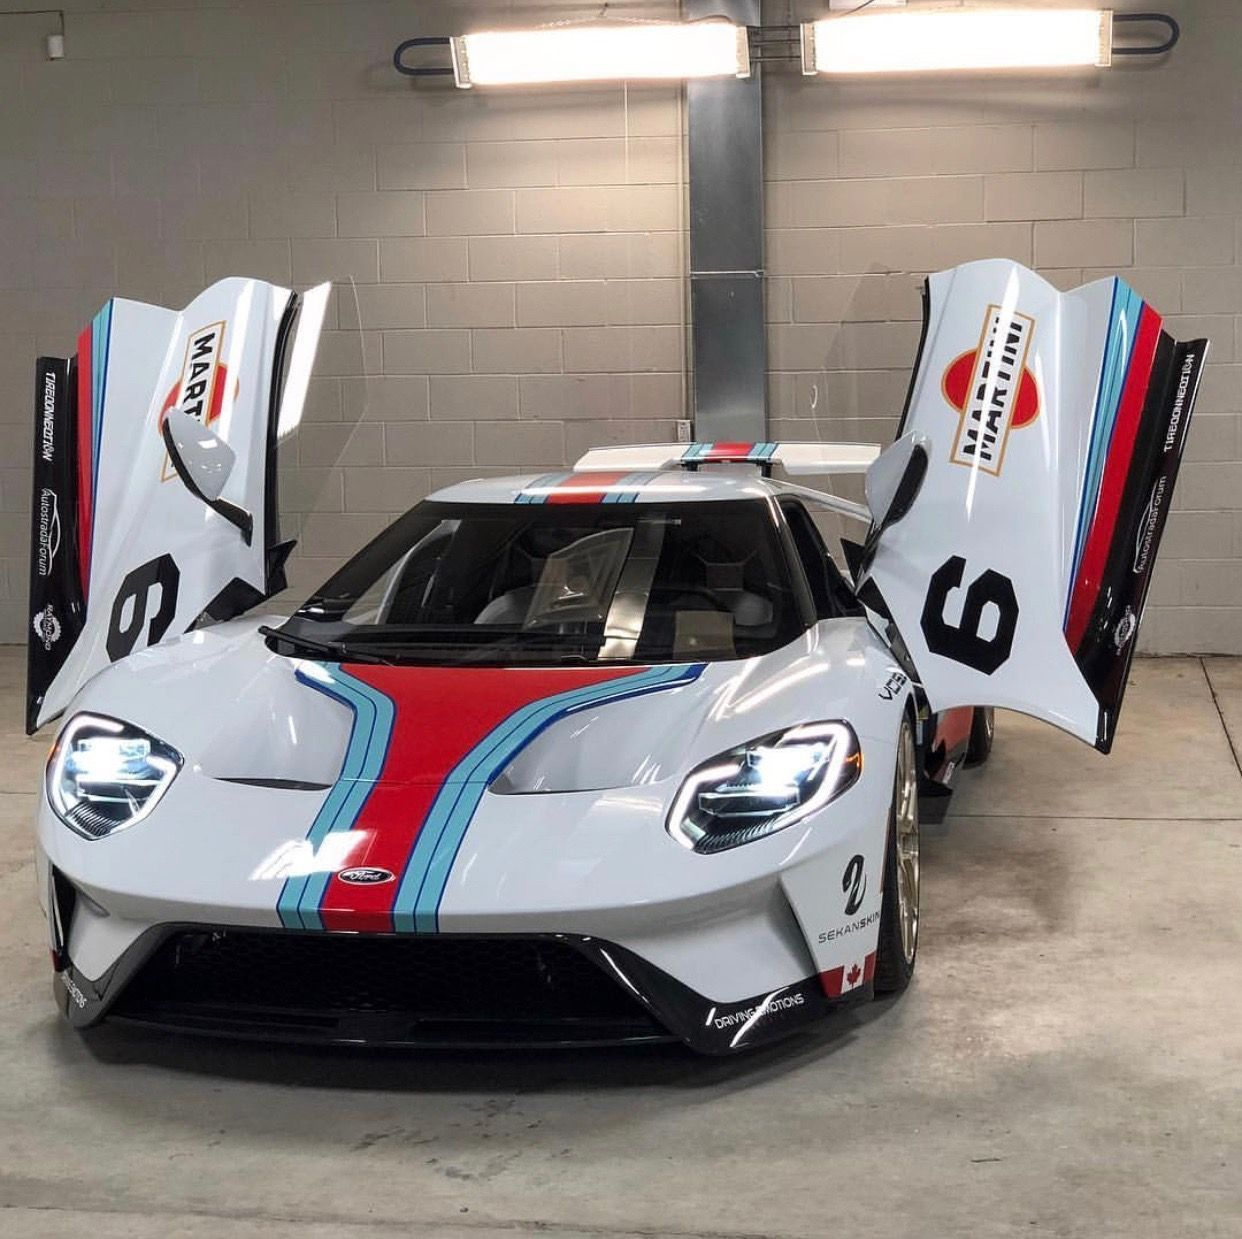 The Ford Gt With Images Ford Gt Ford Super Cars